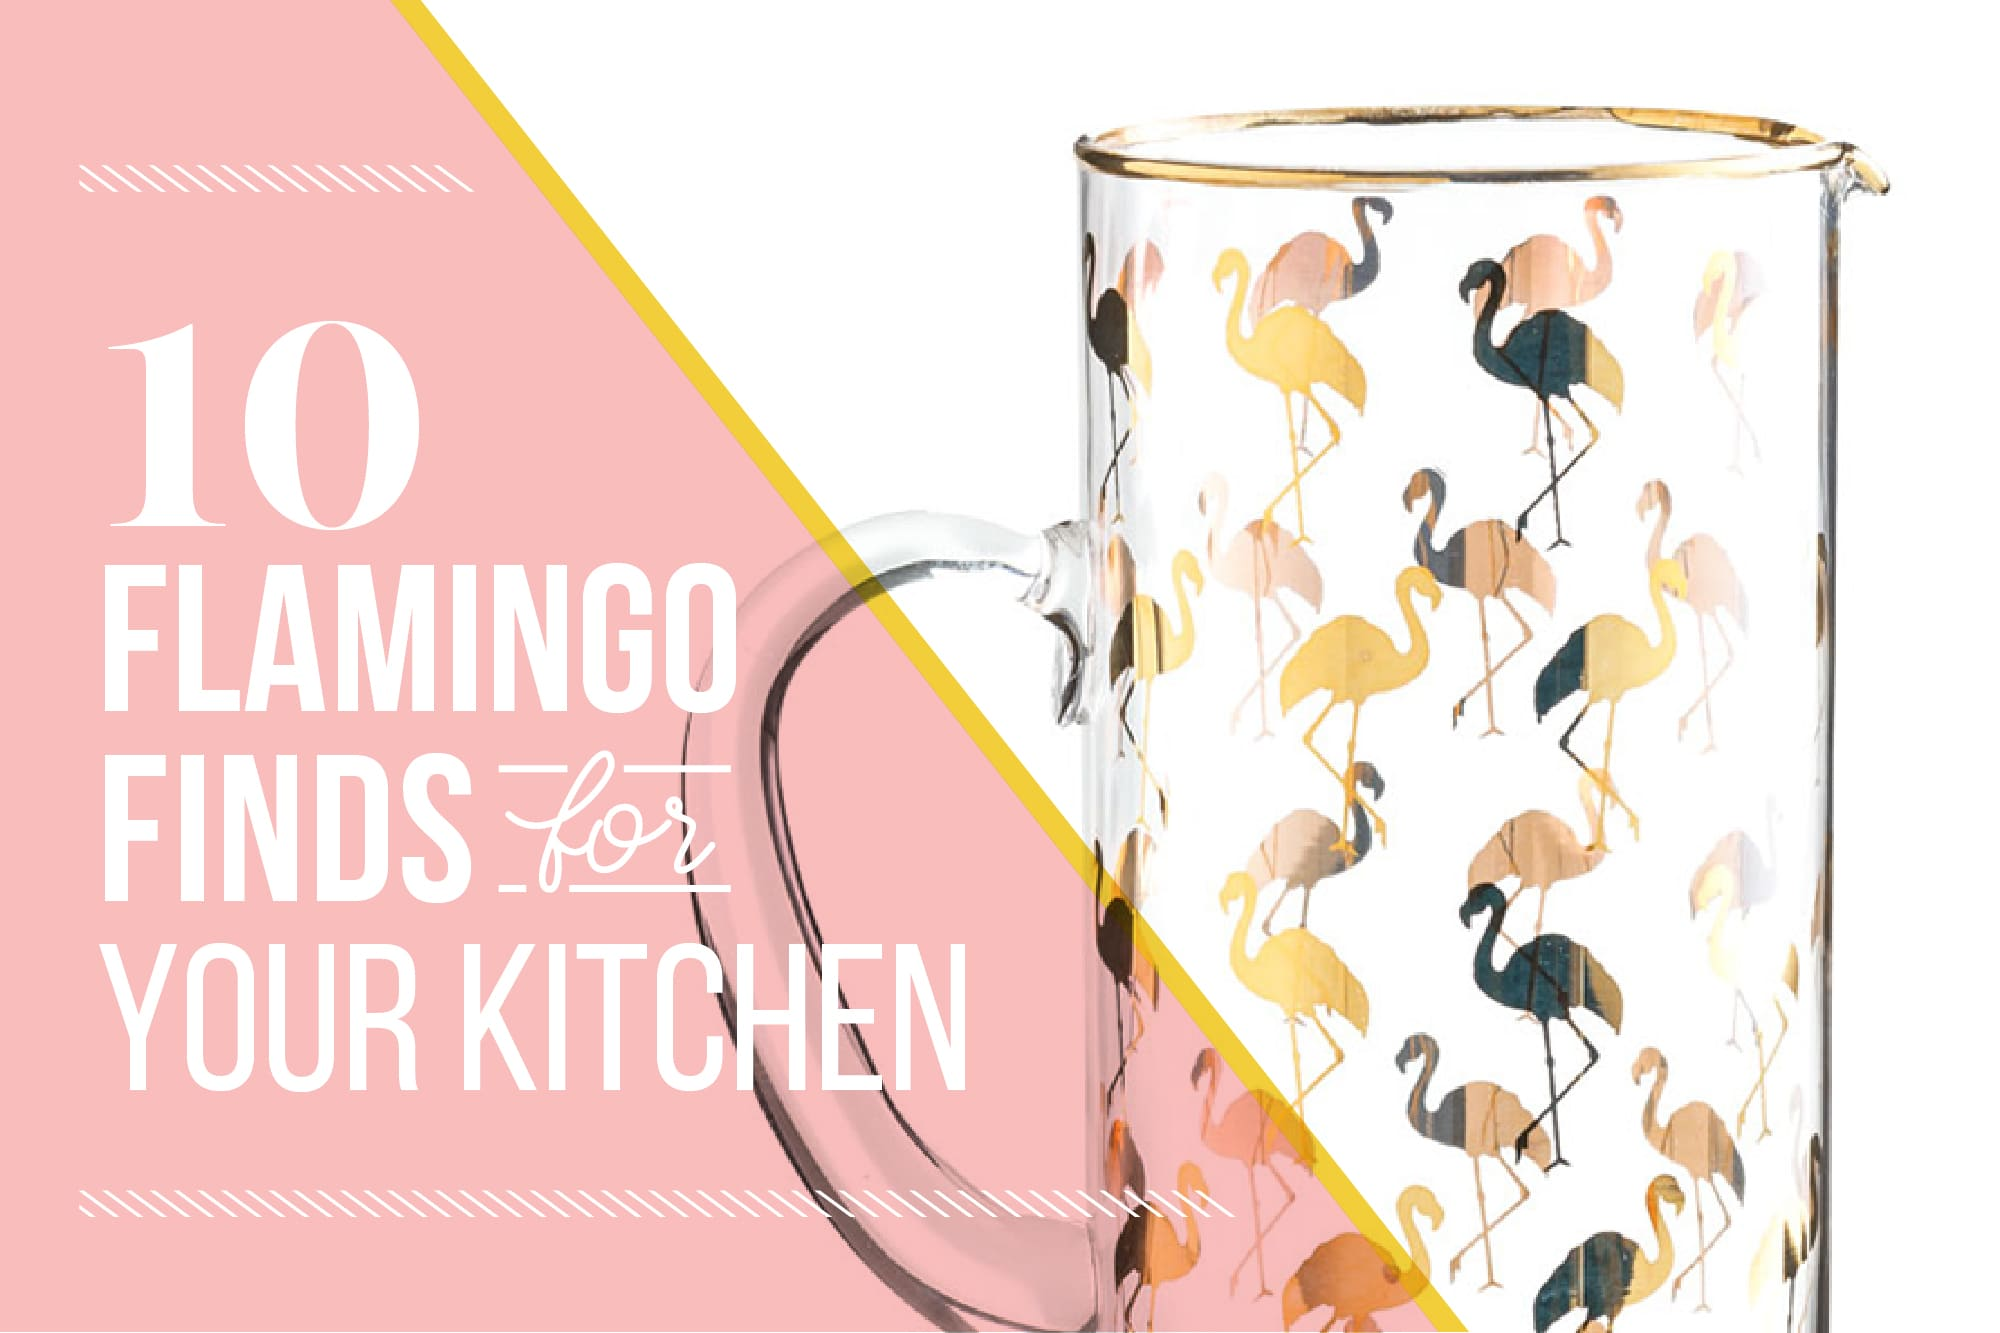 10 Flamingo Finds for Your Kitchen: gallery image 1